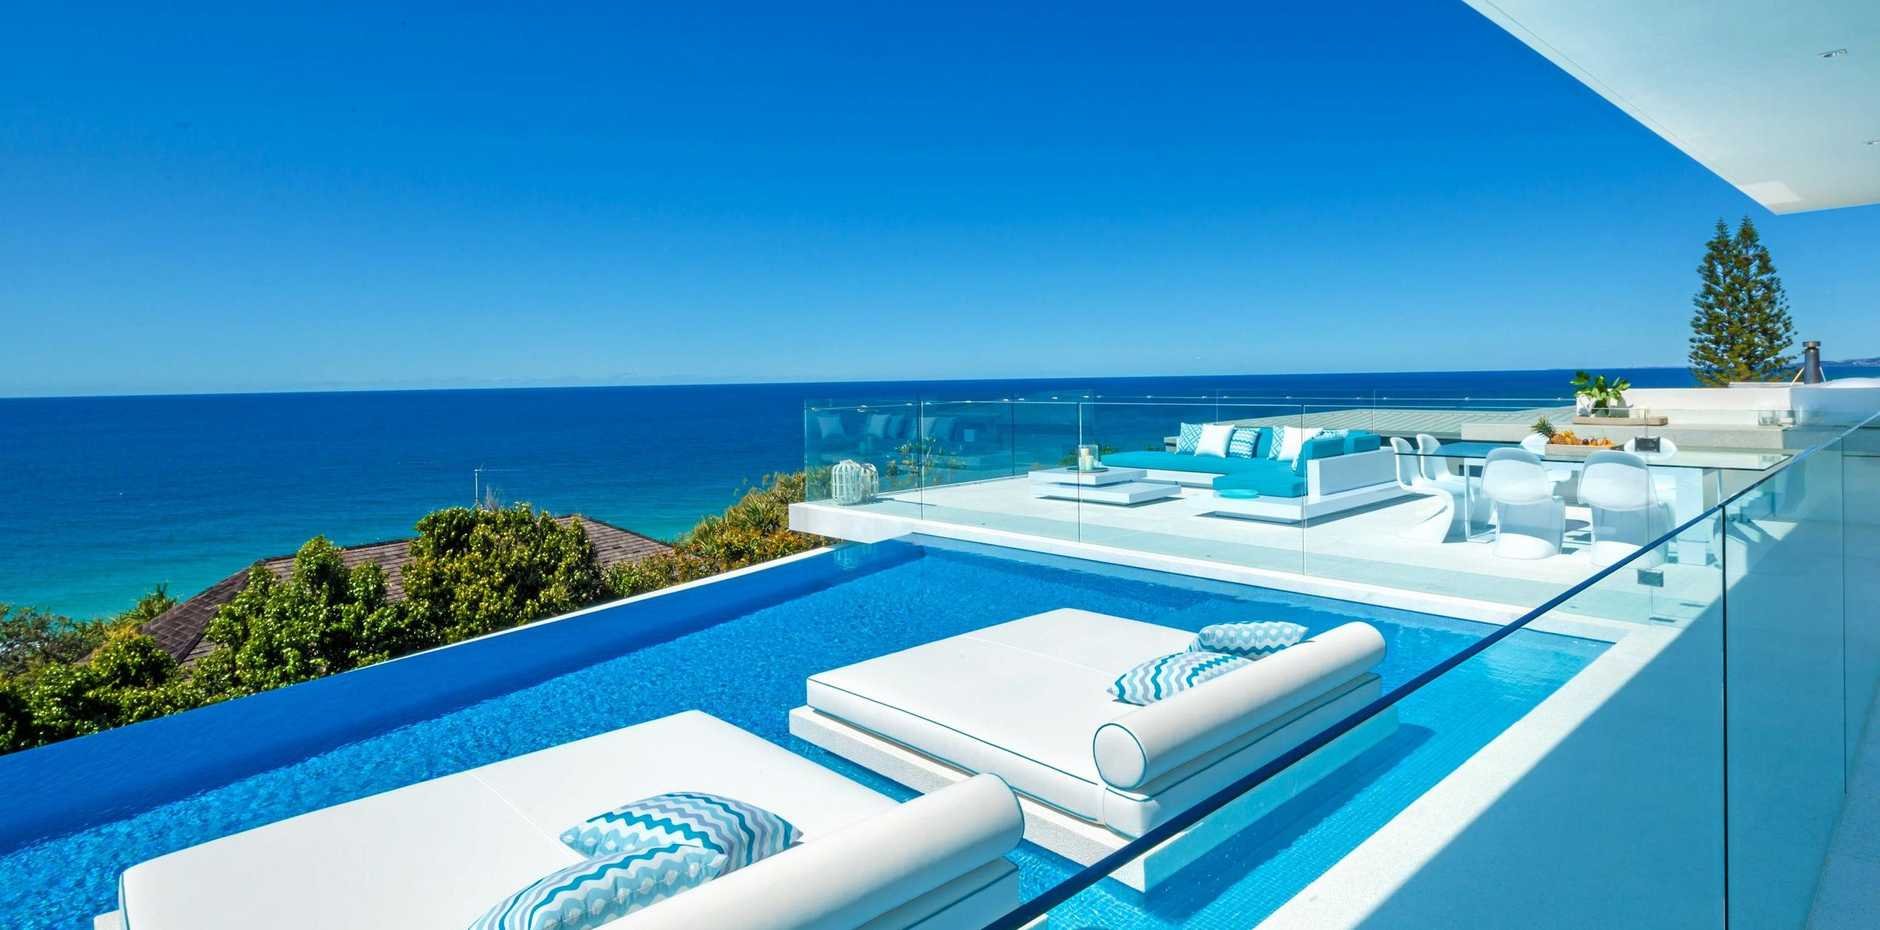 Azure at Sunshine Beach will set you back at least $5500 per night for its breathtaking views and award-winning design.